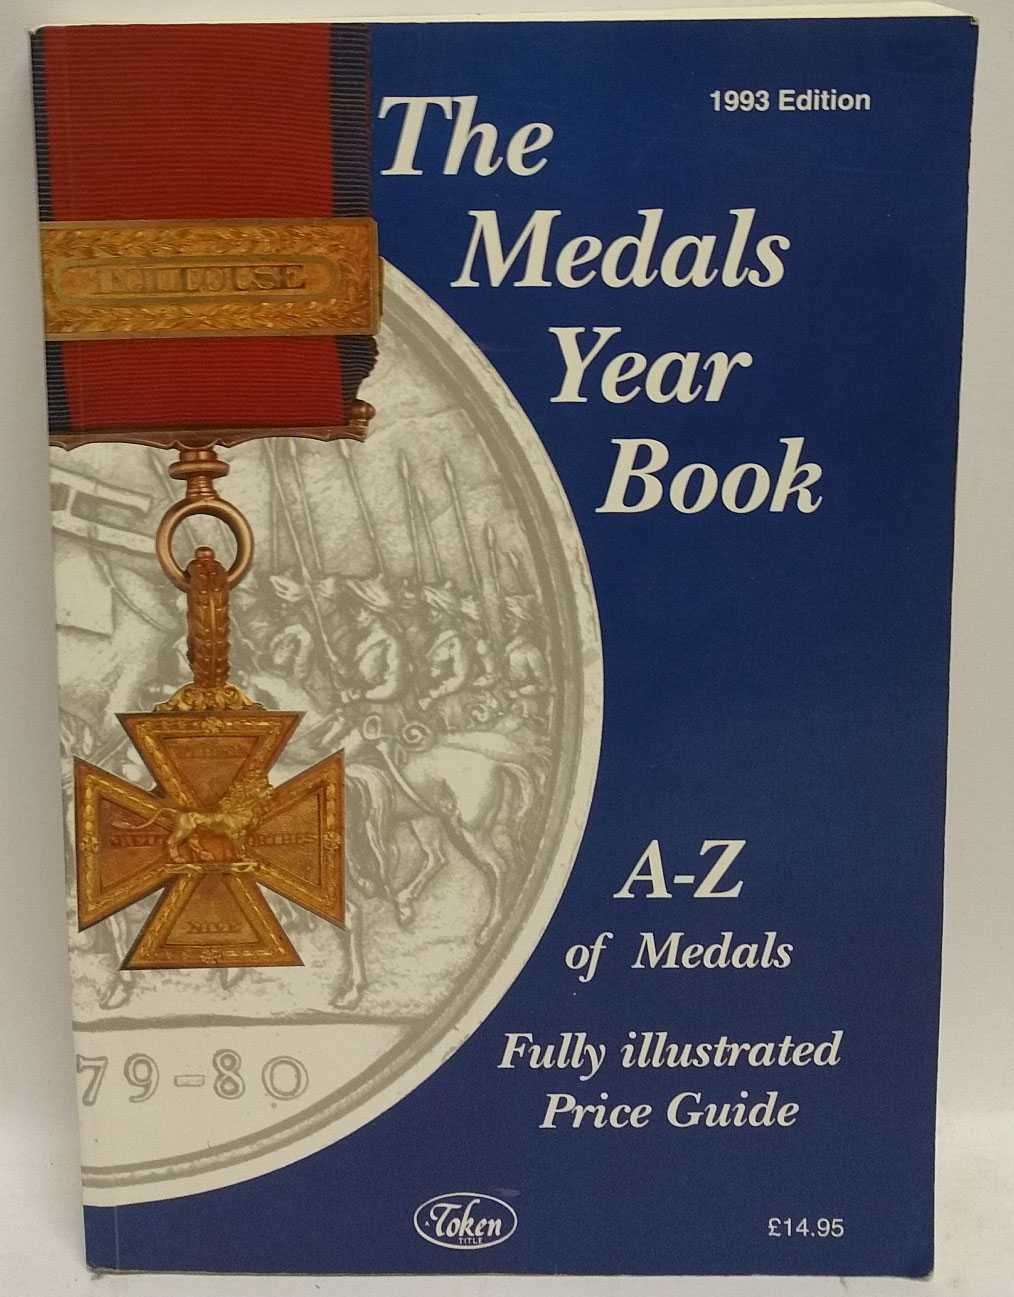 The Medals Year Book 1993: A-Z of Medals Fully illustrated Price Guide, Chris Buckland